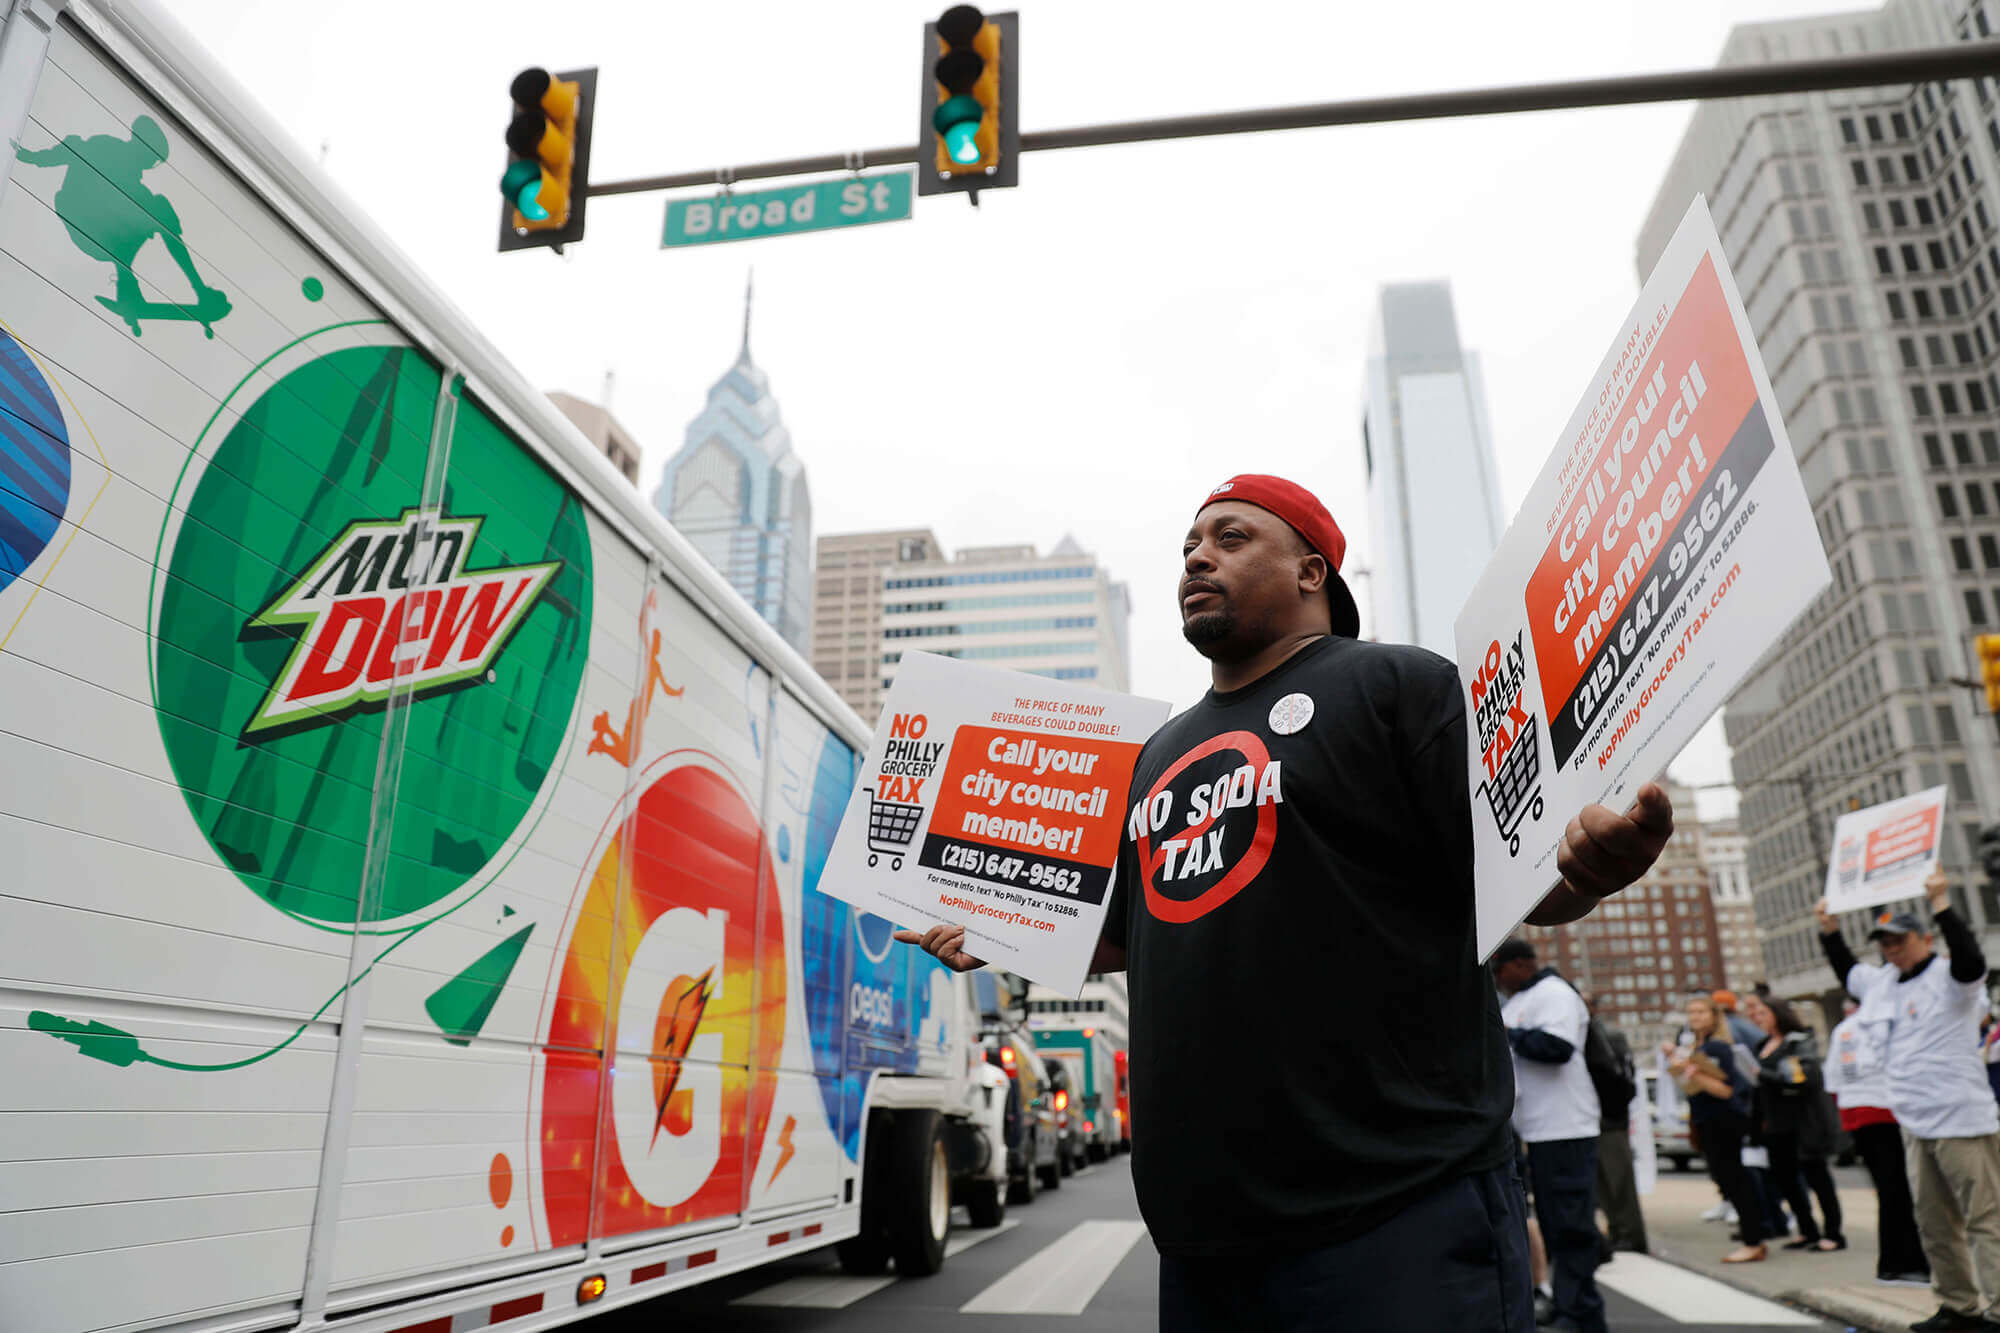 Image of man outside of Philadelphia city hall protesting the soda tax.